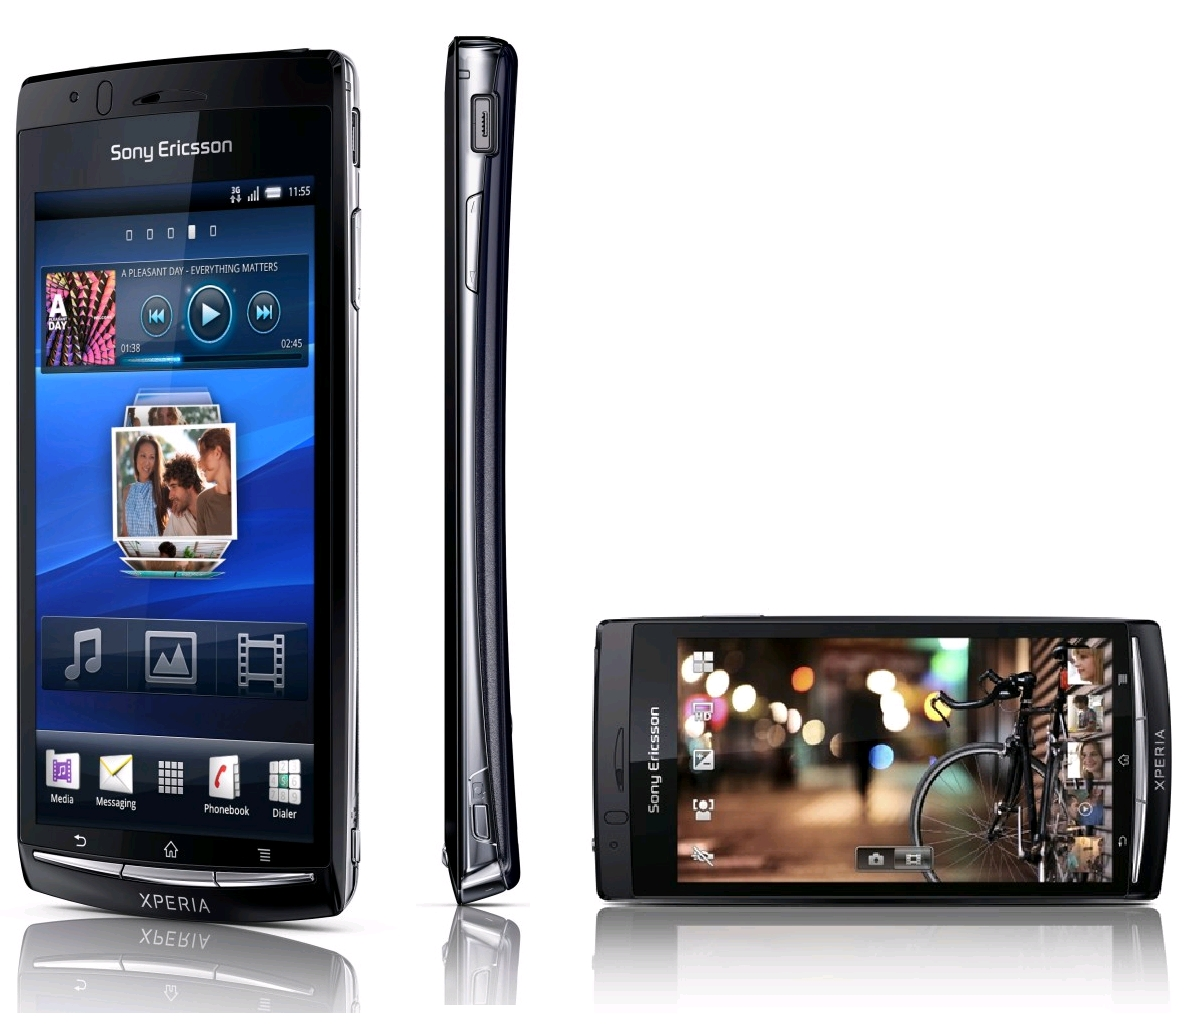 Sony Ericsson Xperia Arc S Reviews  Pros and Cons  Ratings   TechSpot